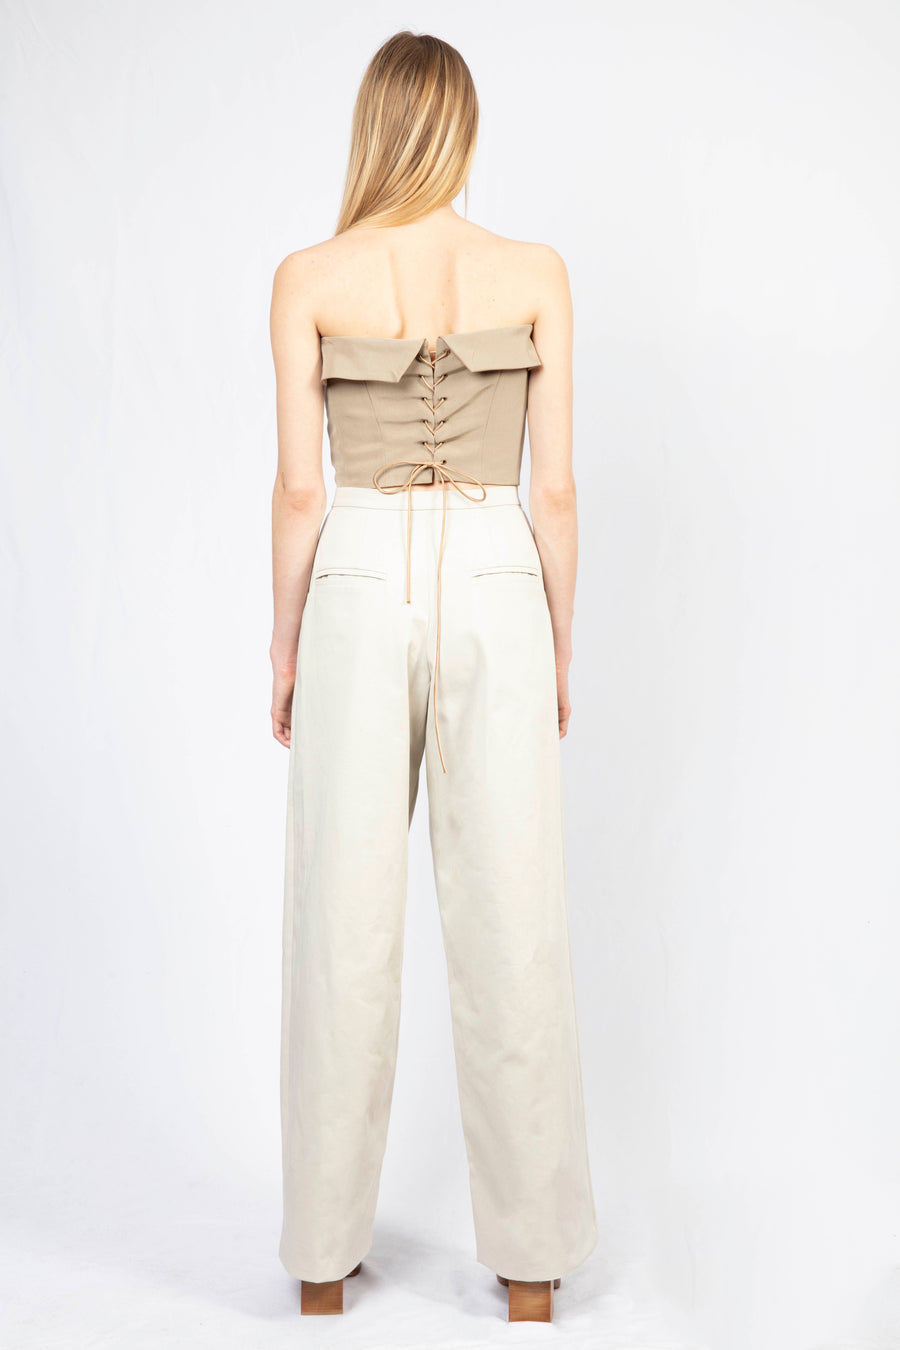 Panelled Bustier Top/High-waisted Tailored Pants